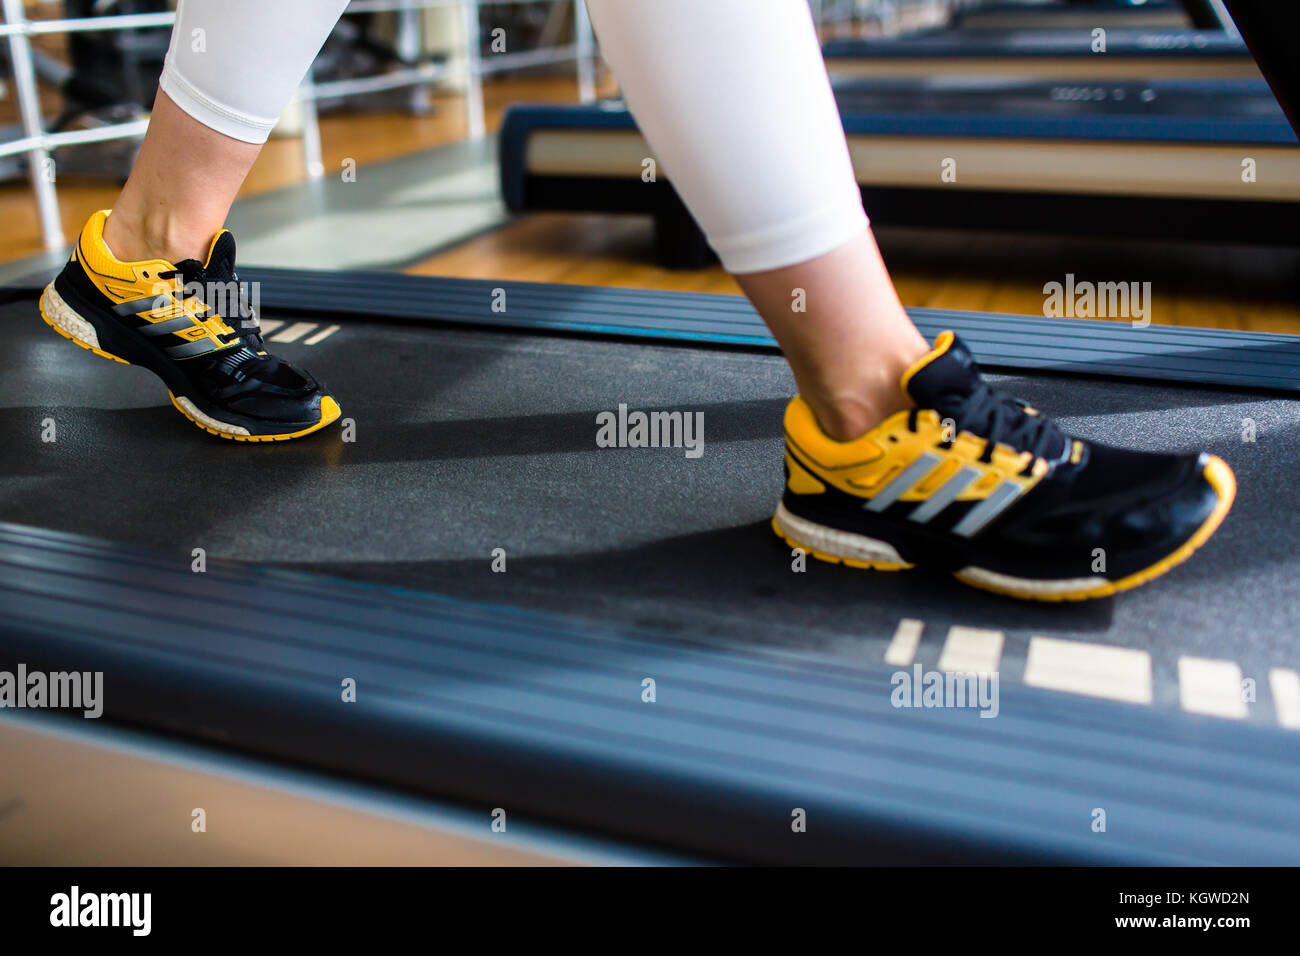 Human feet on threadmill moving track during workout in gym - Stock Image